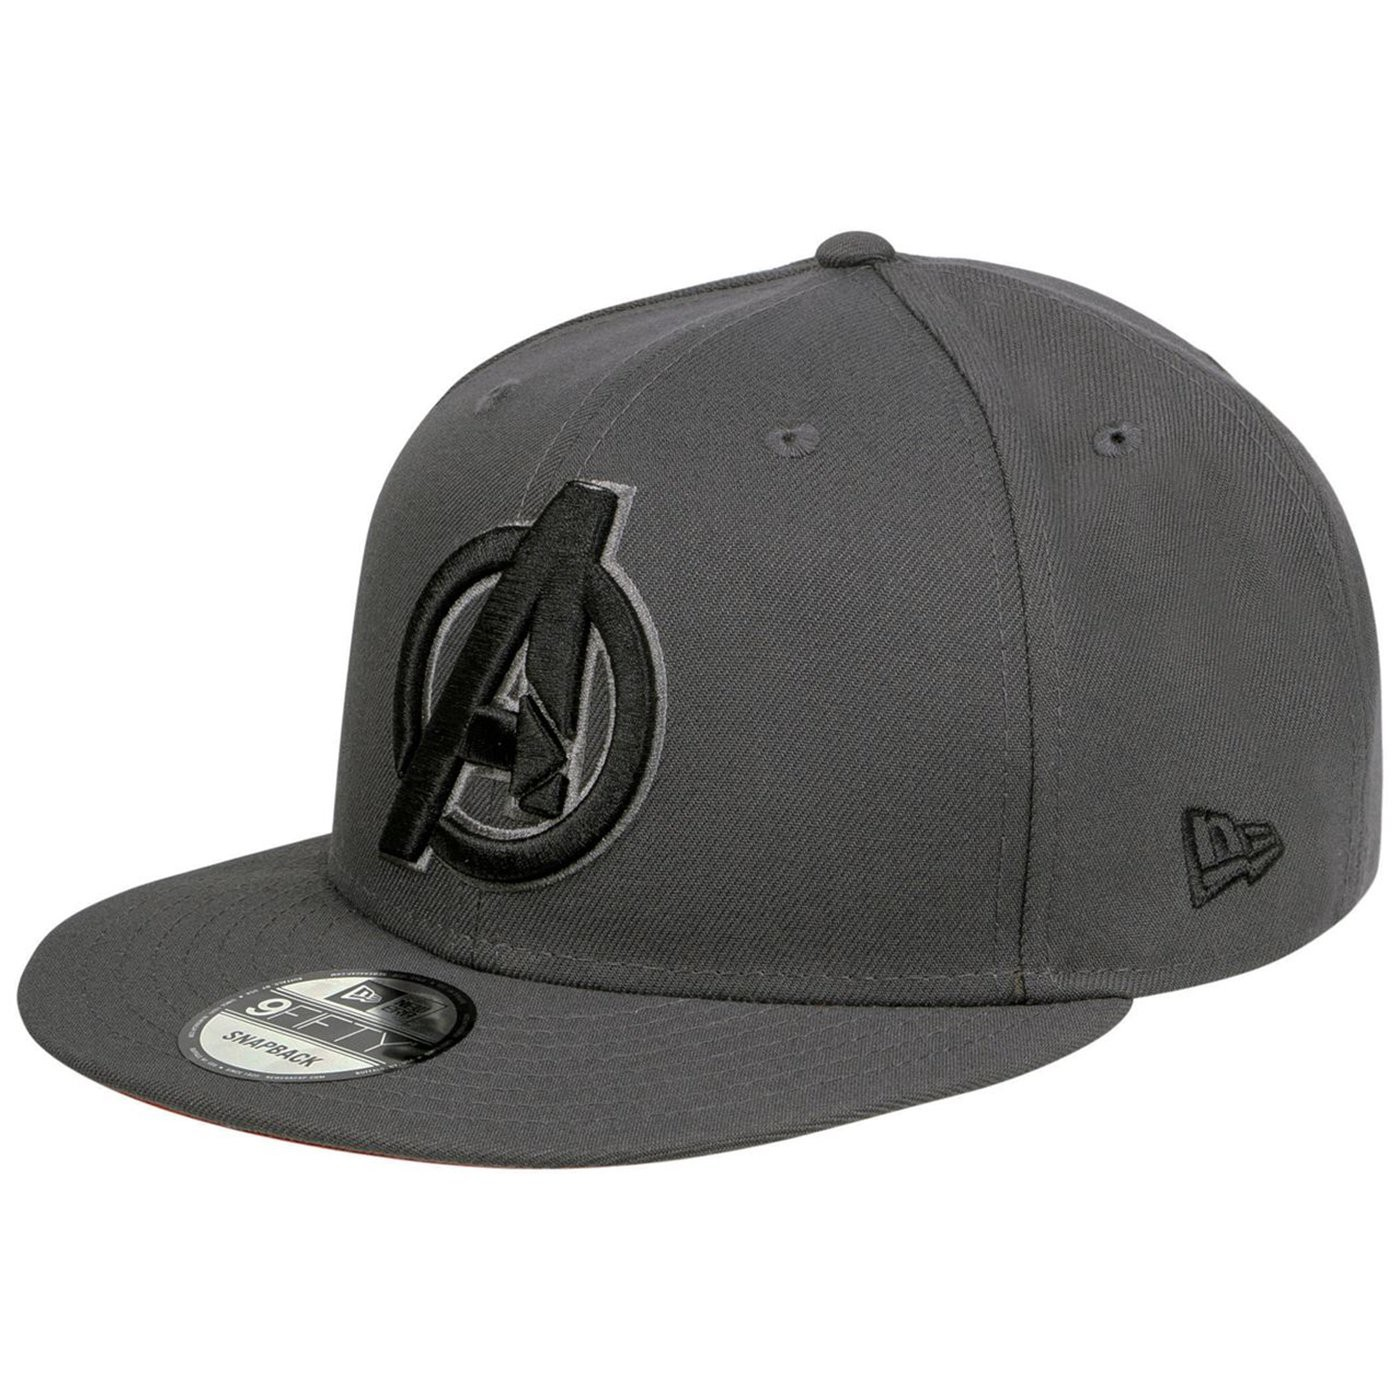 Avengers Endgame Movie A 9Fifty Adjustable Hat